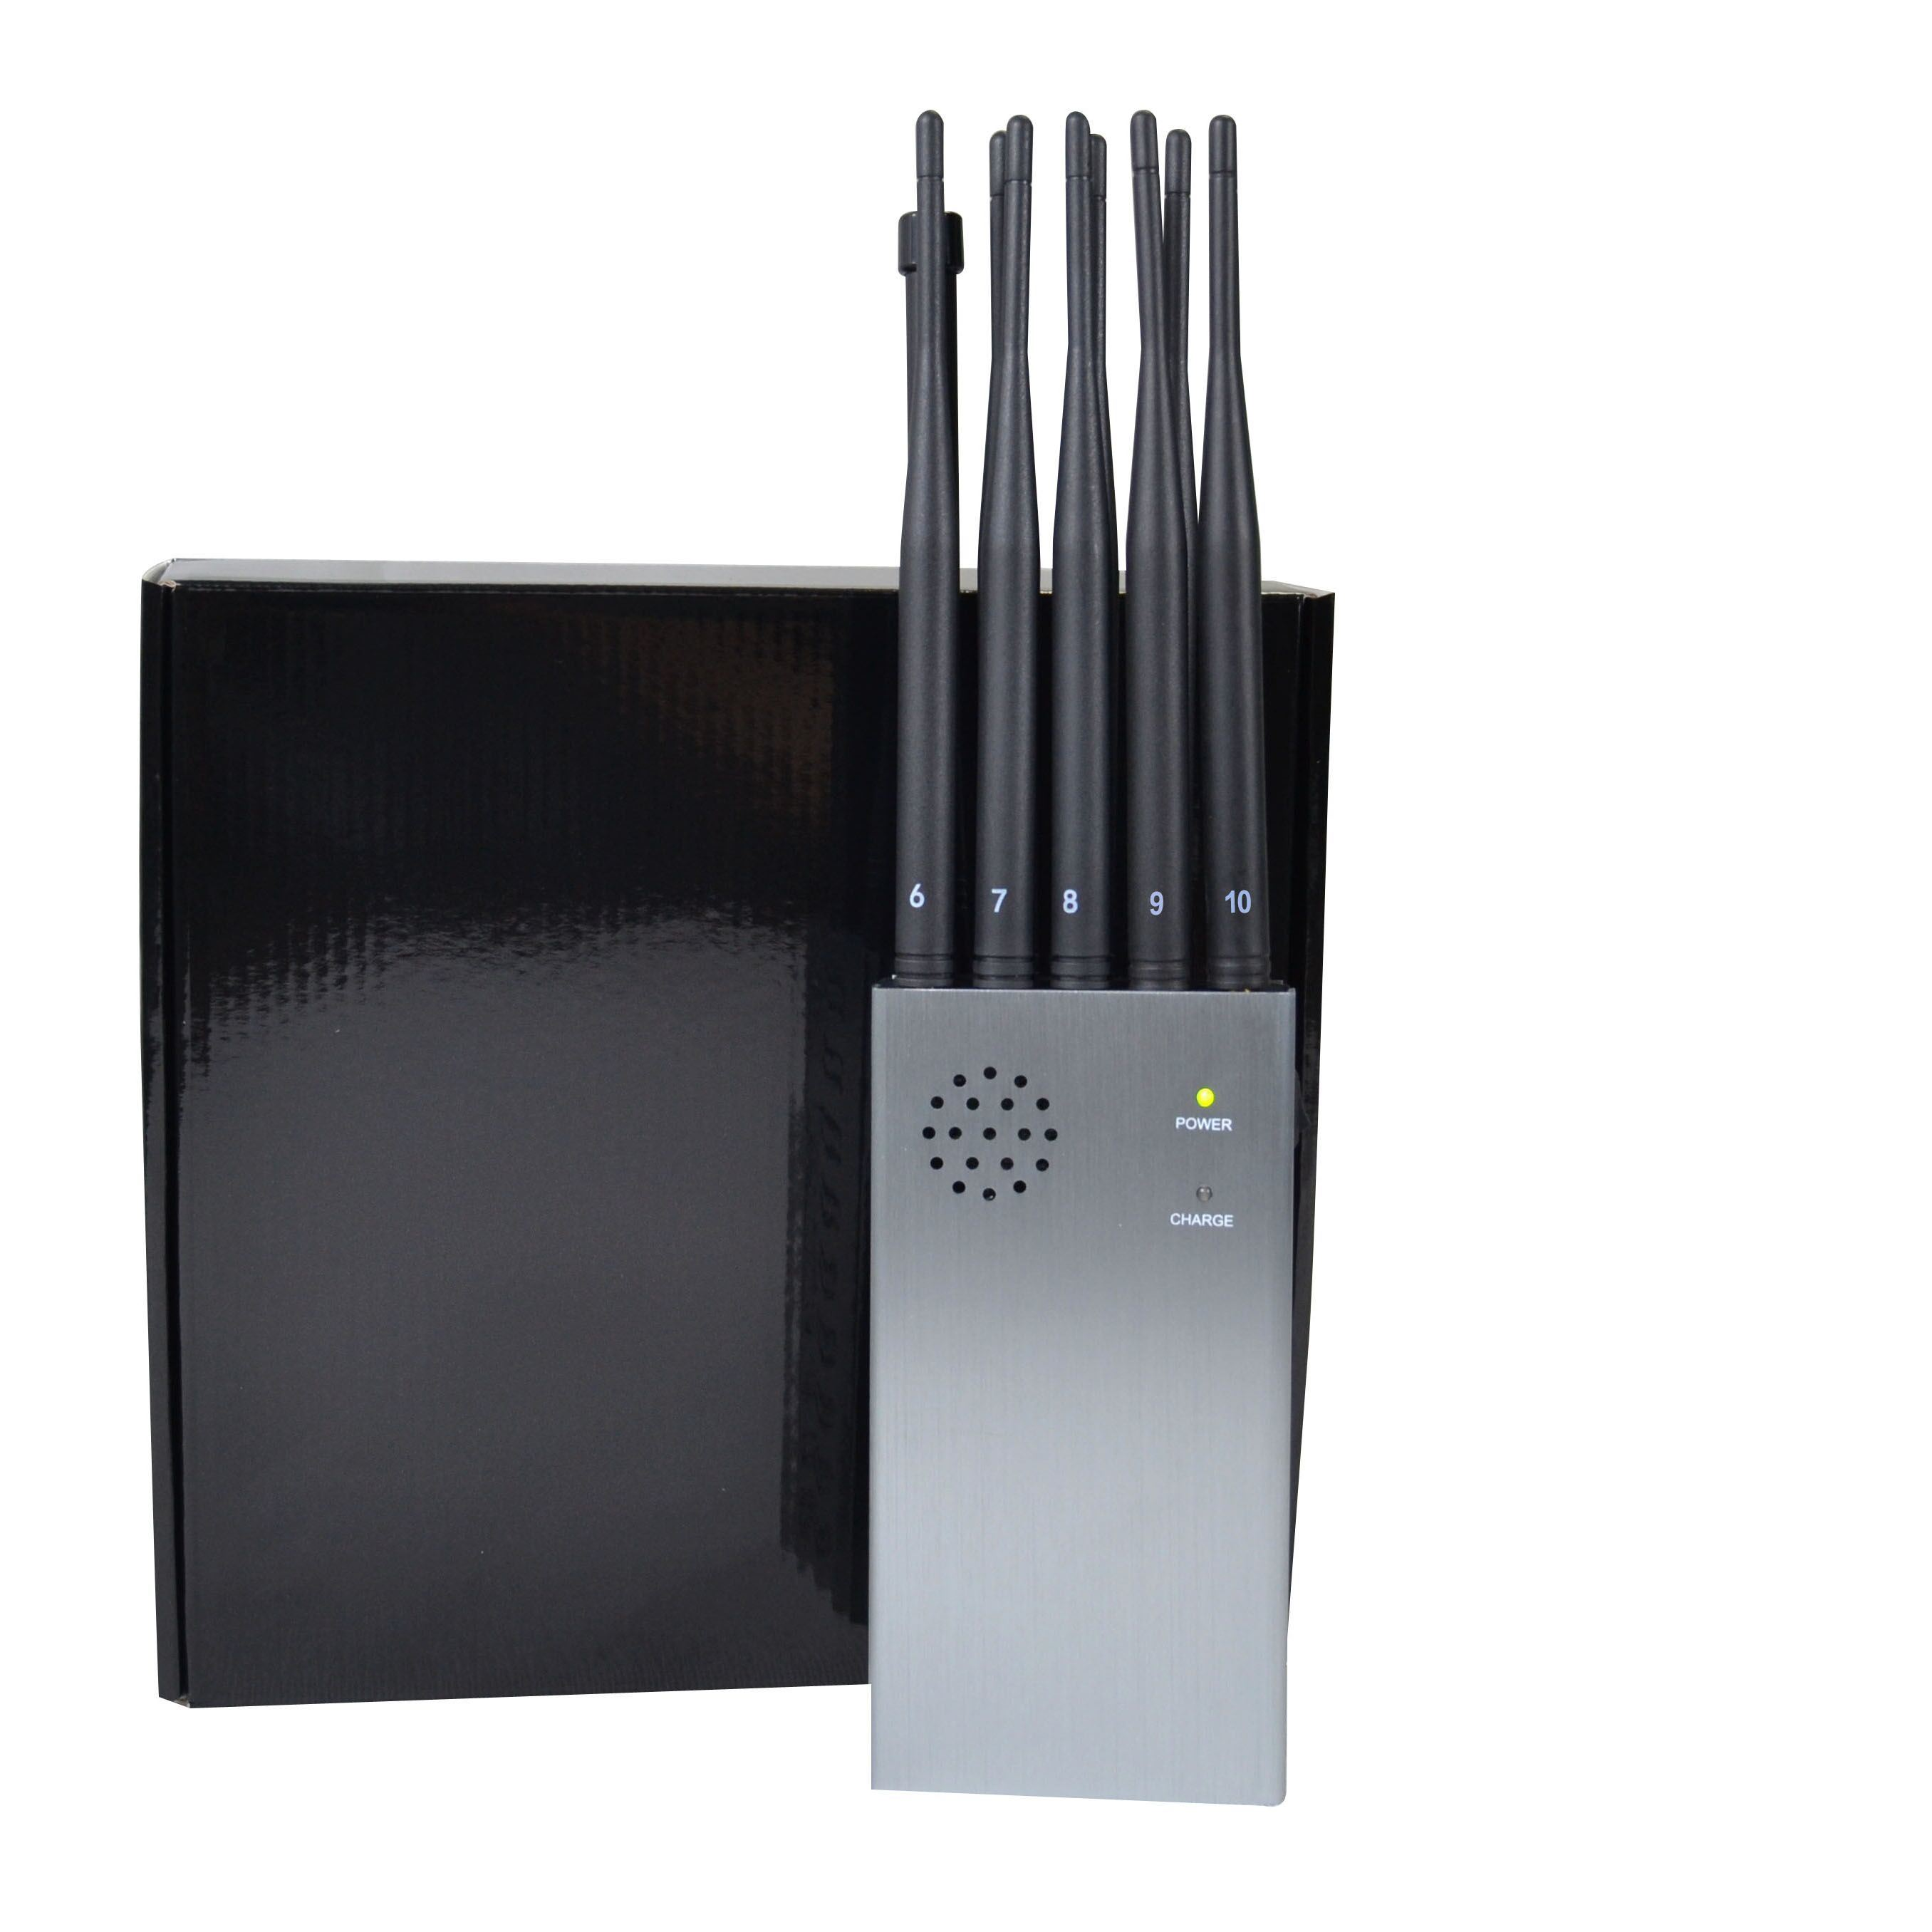 home phone jammer uk - China High Power up to 8000mA Battery Portable Jammer for Military Using Including Lojack, 3G 4G 2g 5g Remote Control GPS Signals - China 8000mA Battery Jammer, Large Volume Power Signal Blocker